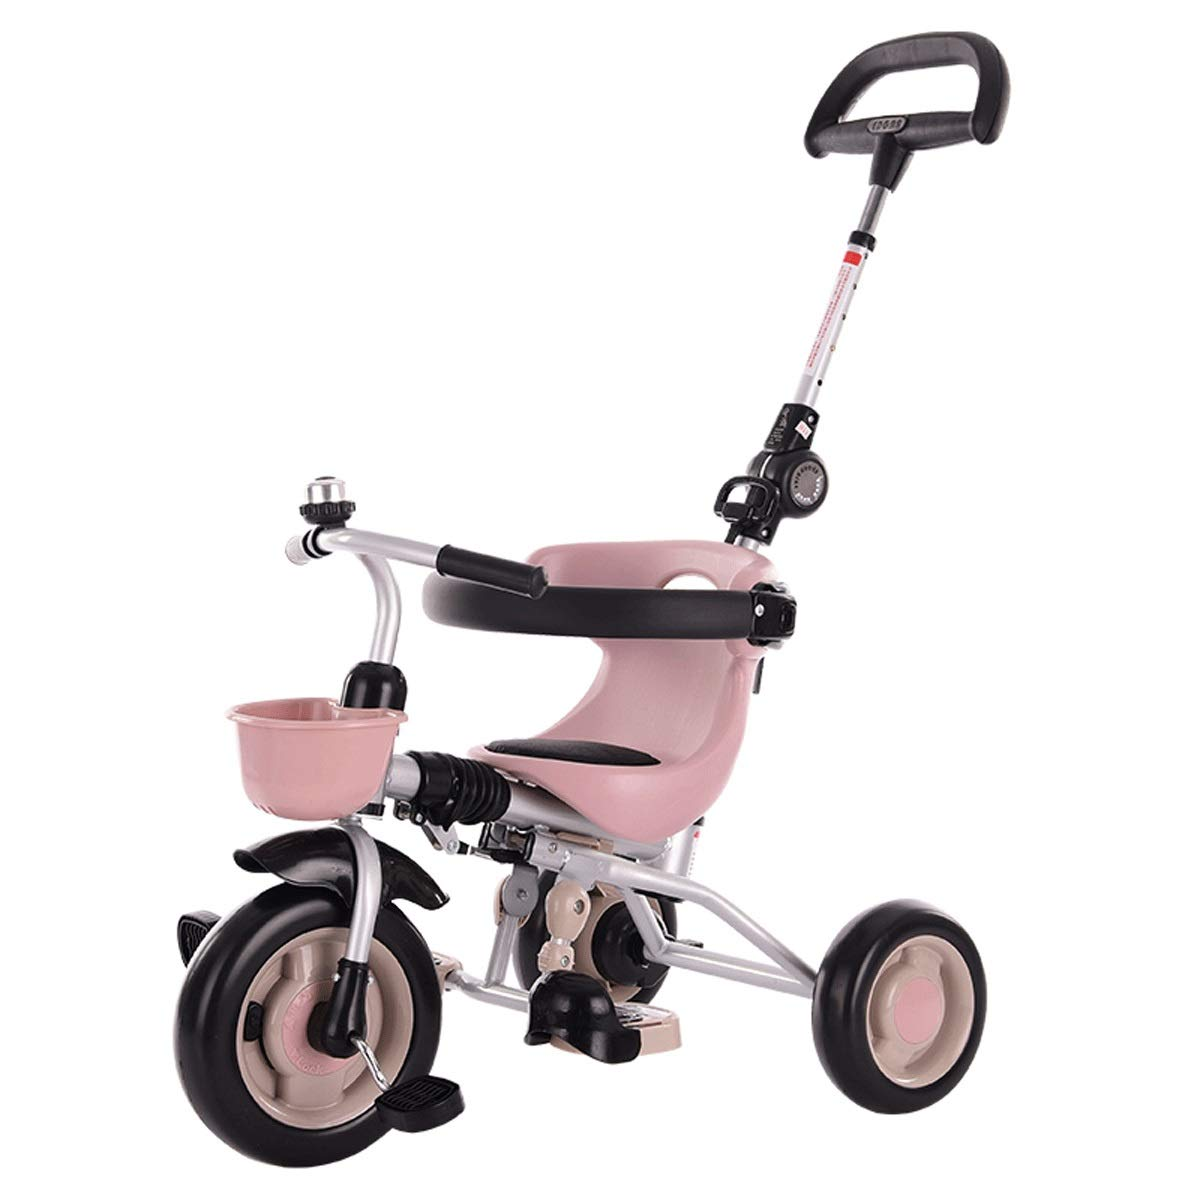 Baianju Folding Children's Tricycle Baby Stroller Pedal Bicycle Stroller Child Toy